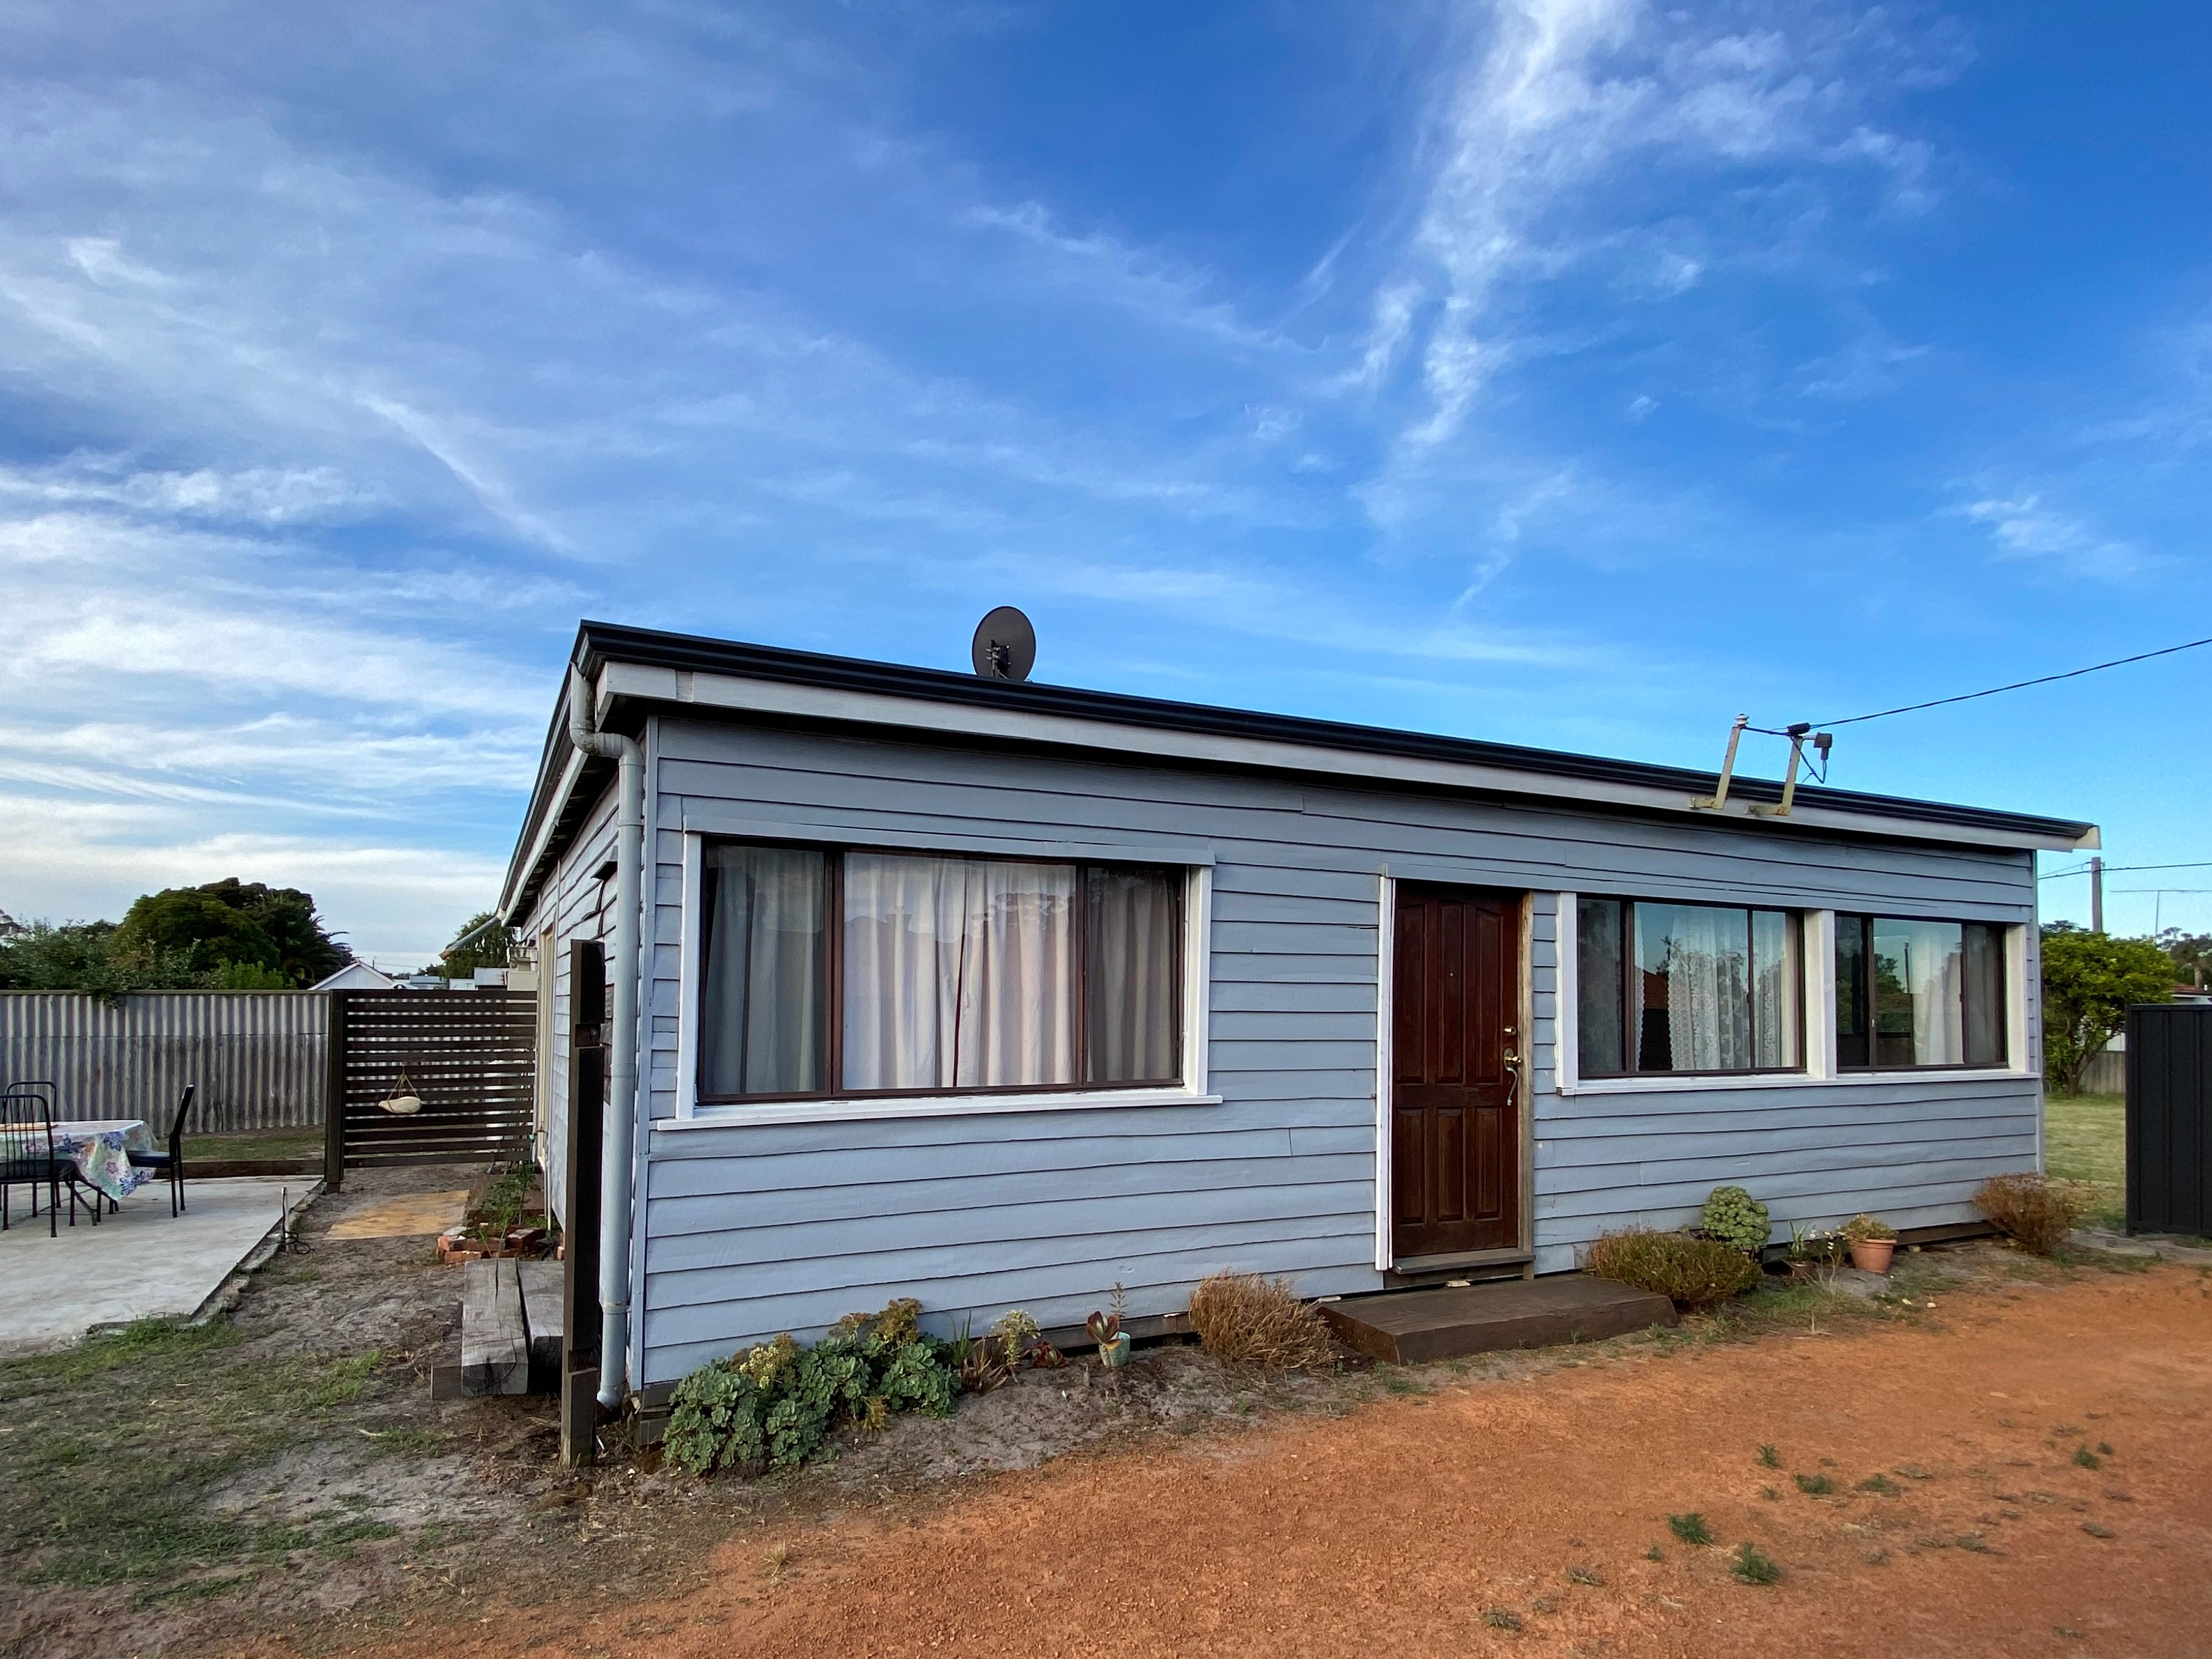 60 Ipsen Street Manjimup - House For Sale - 22791122 - Acton Southwest